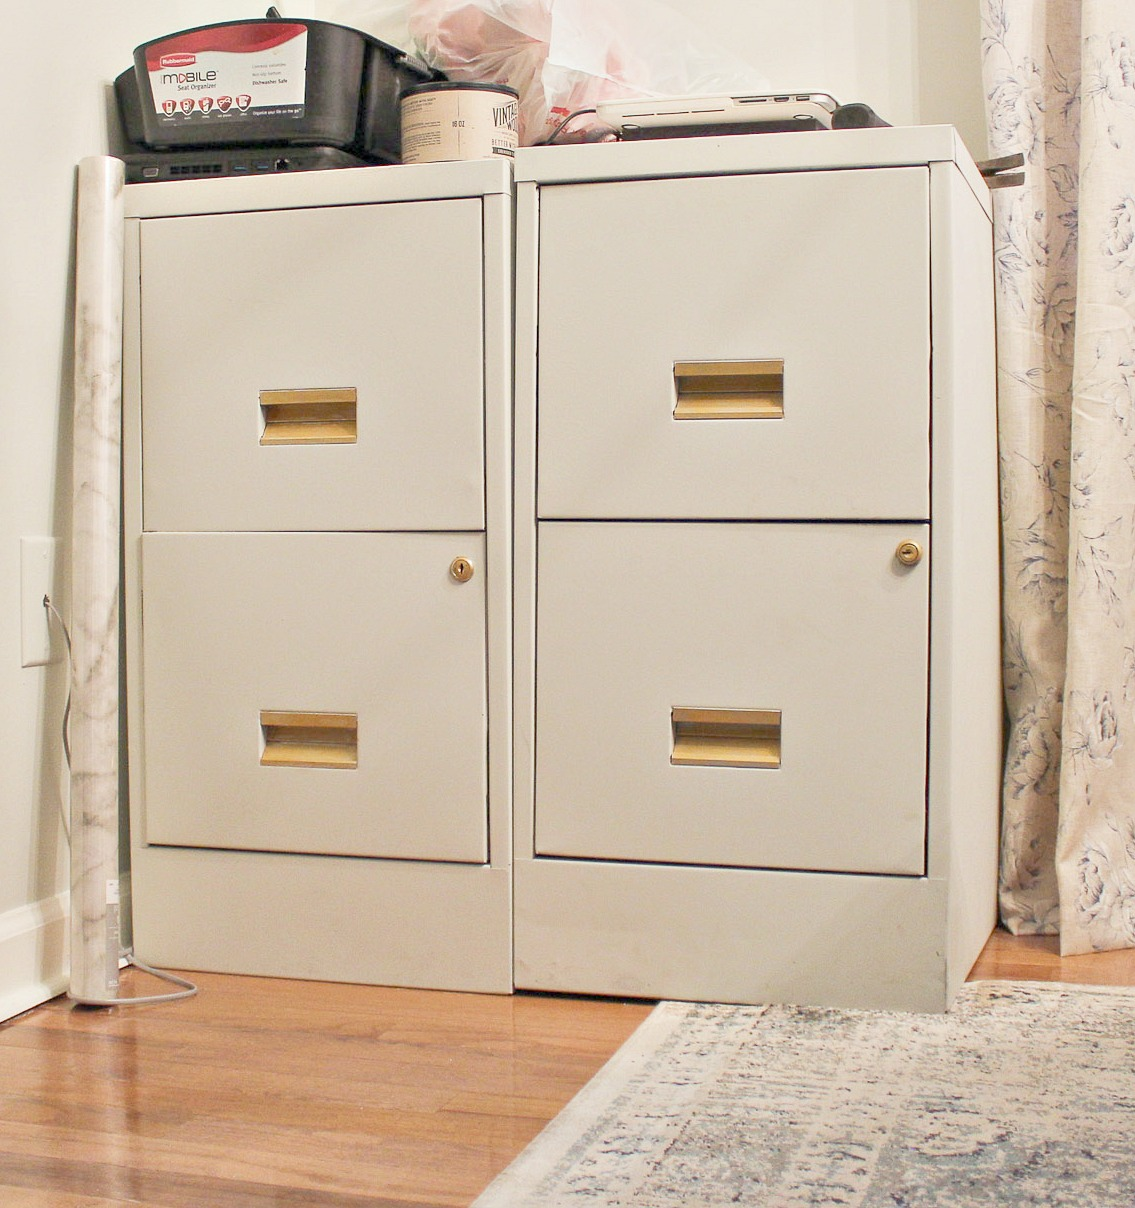 gold pulls on metal filing cabinet